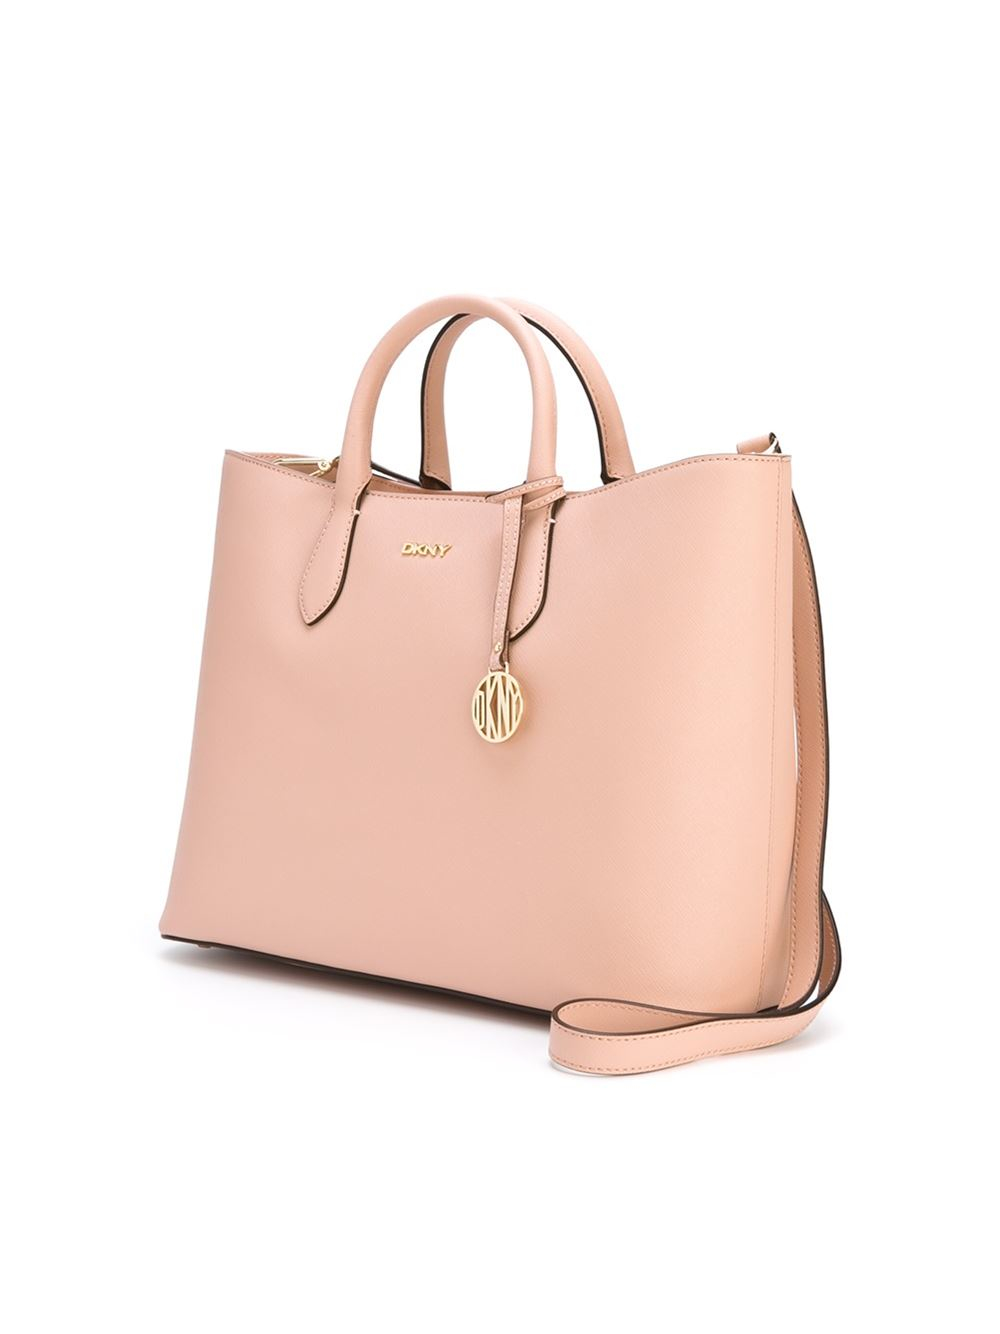 Dkny Classic Tote Bag in Pink | Lyst